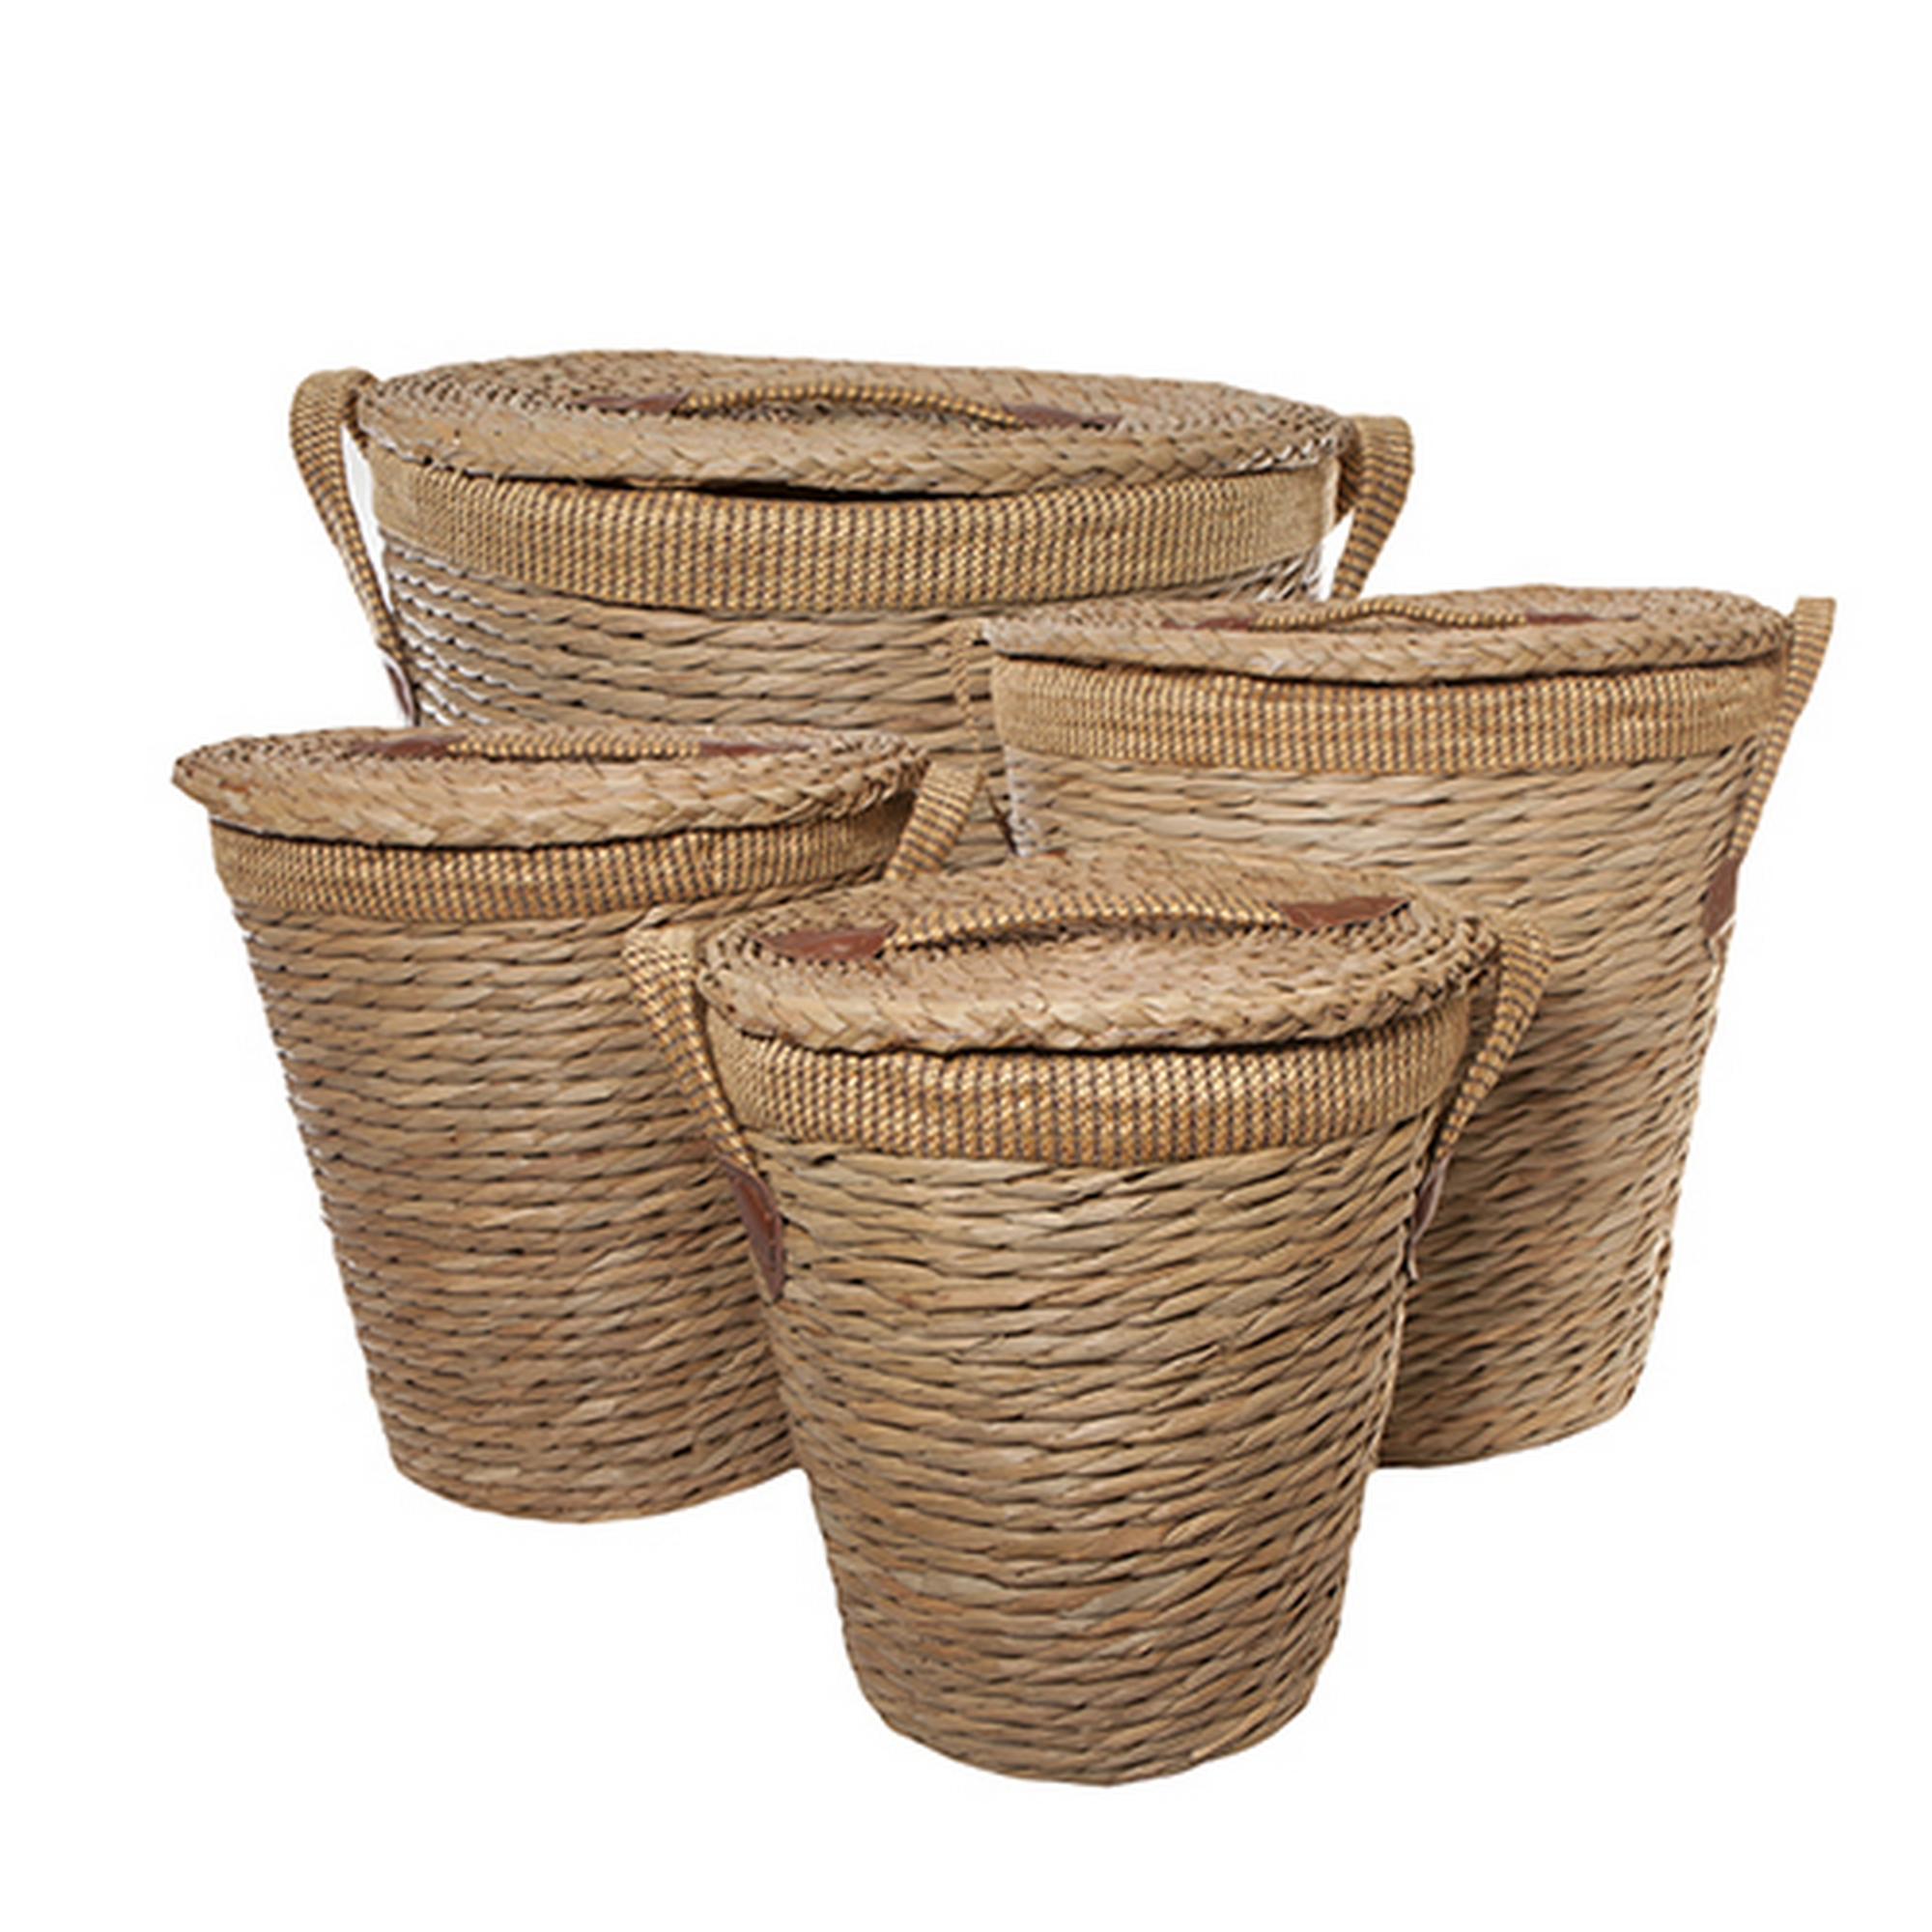 round and lined rush laundry bin baskets with handles and